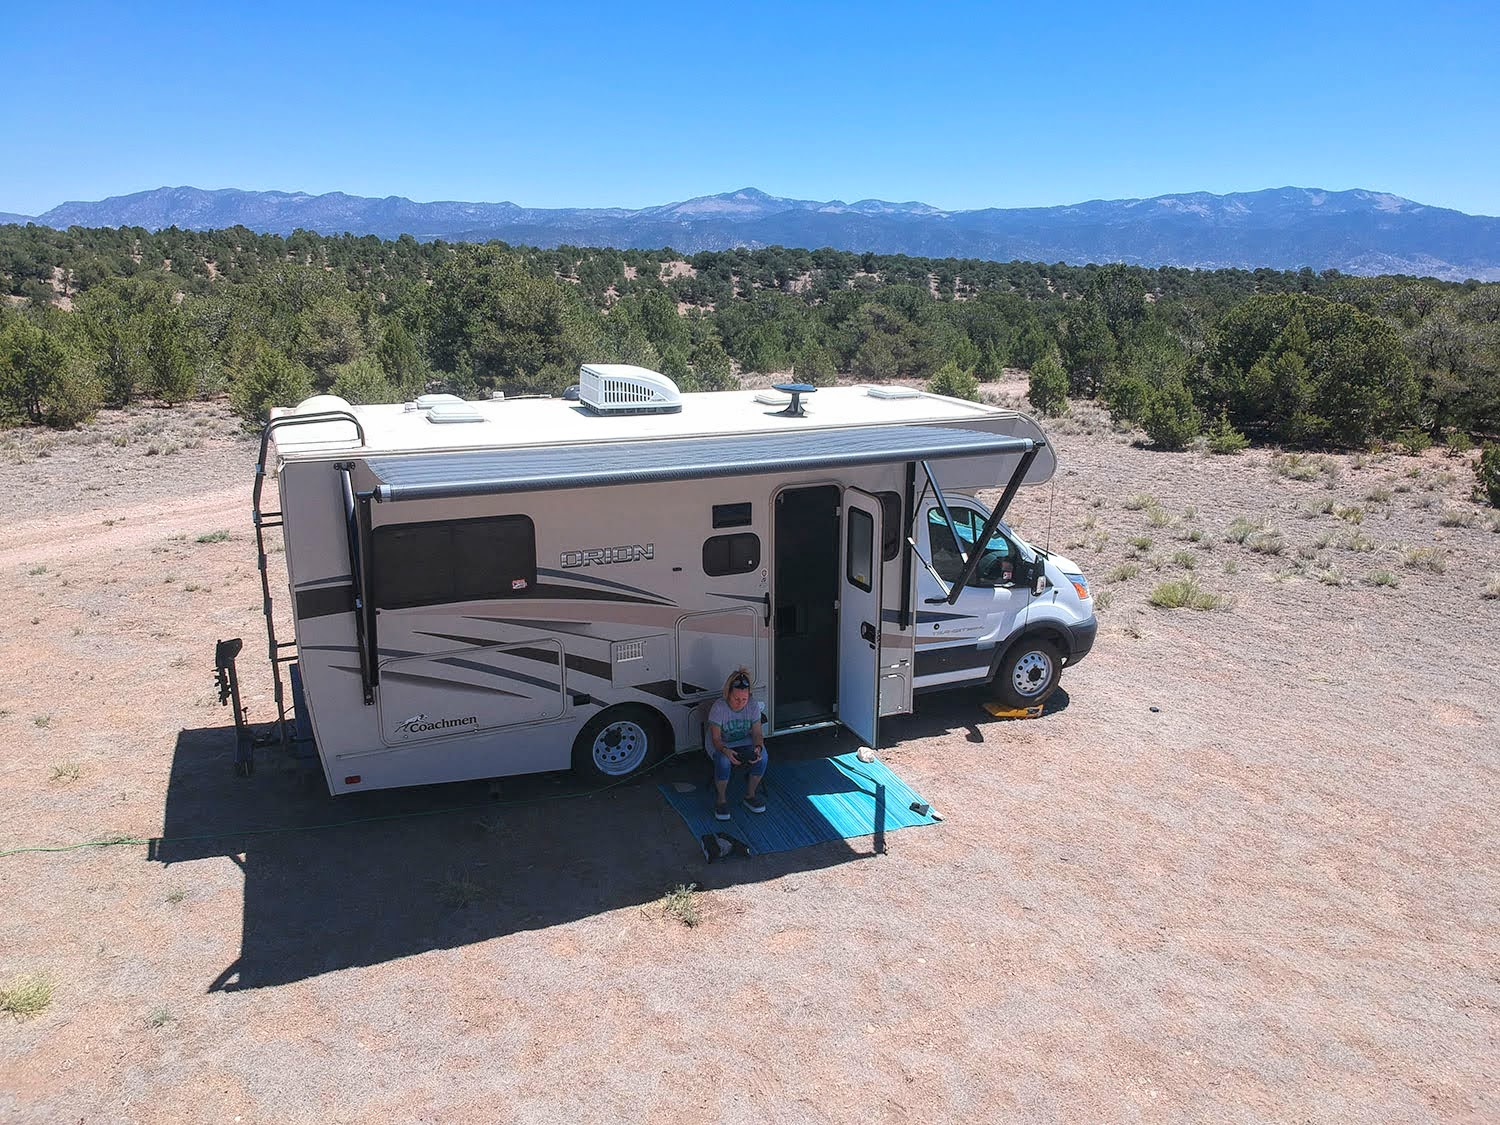 Solo RVing